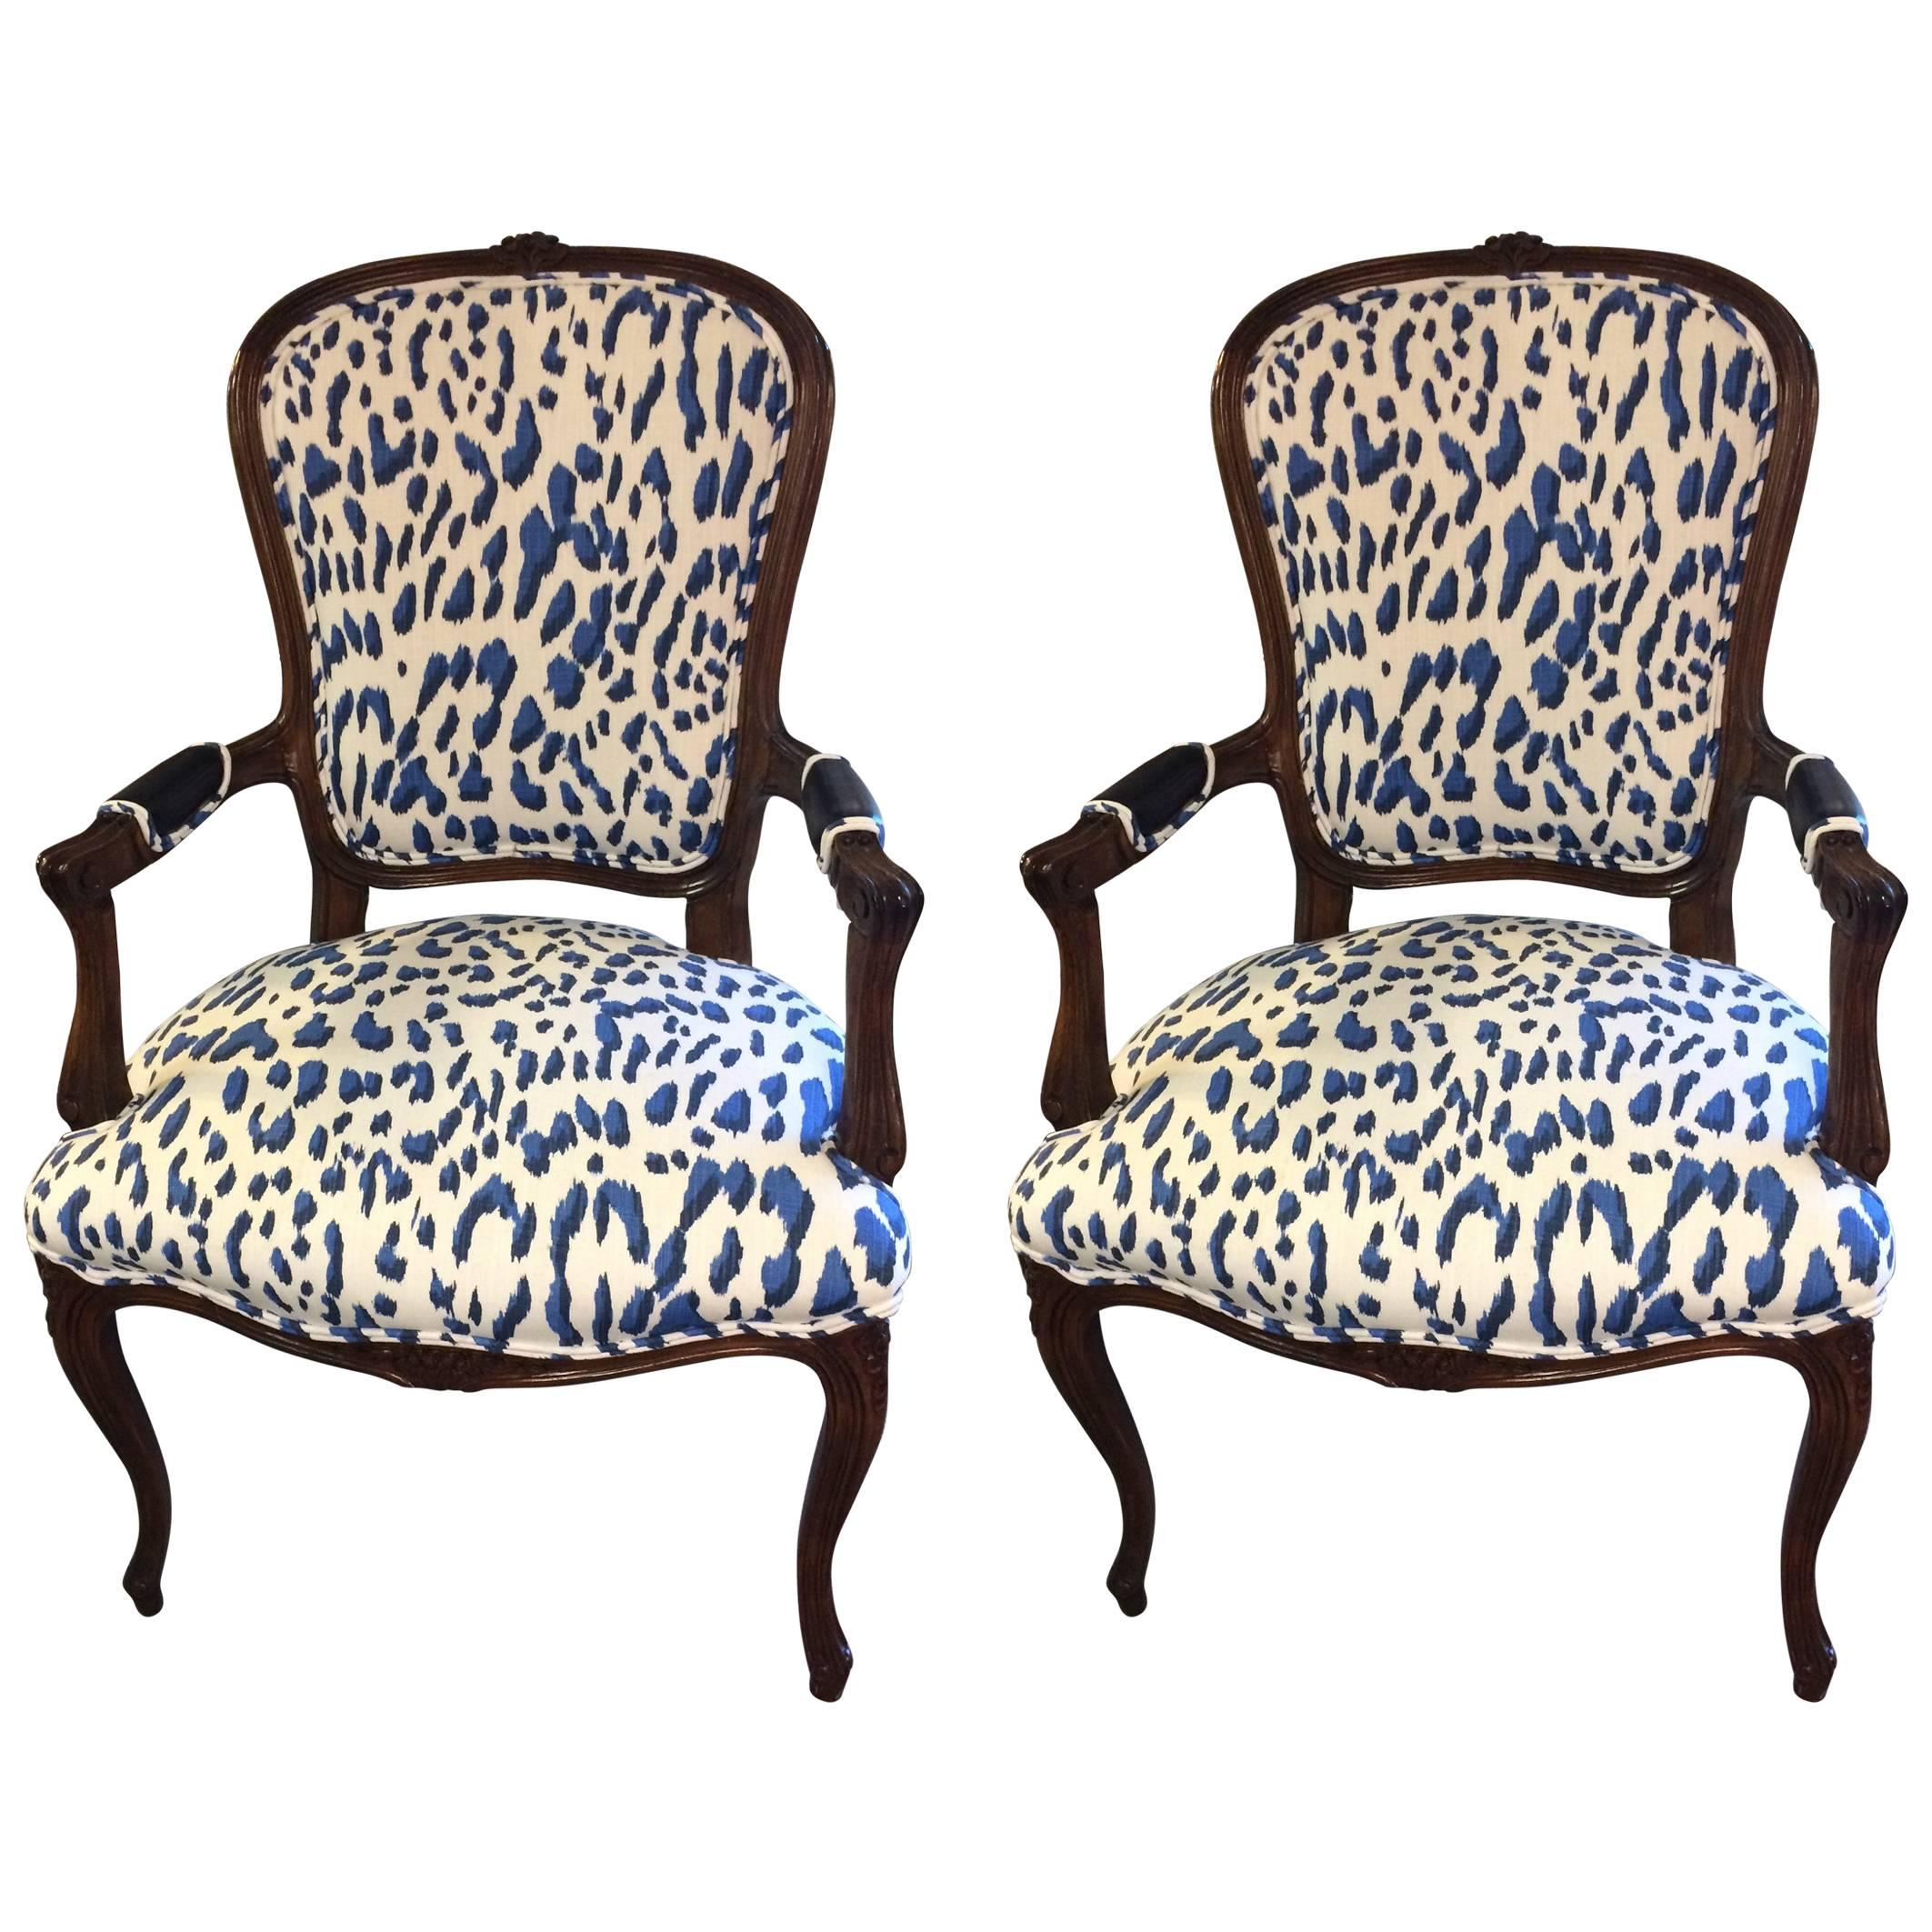 blue and white upholstered chairs vibrating sex chair pair of schnazzy armchairs in schumacher animal print for sale